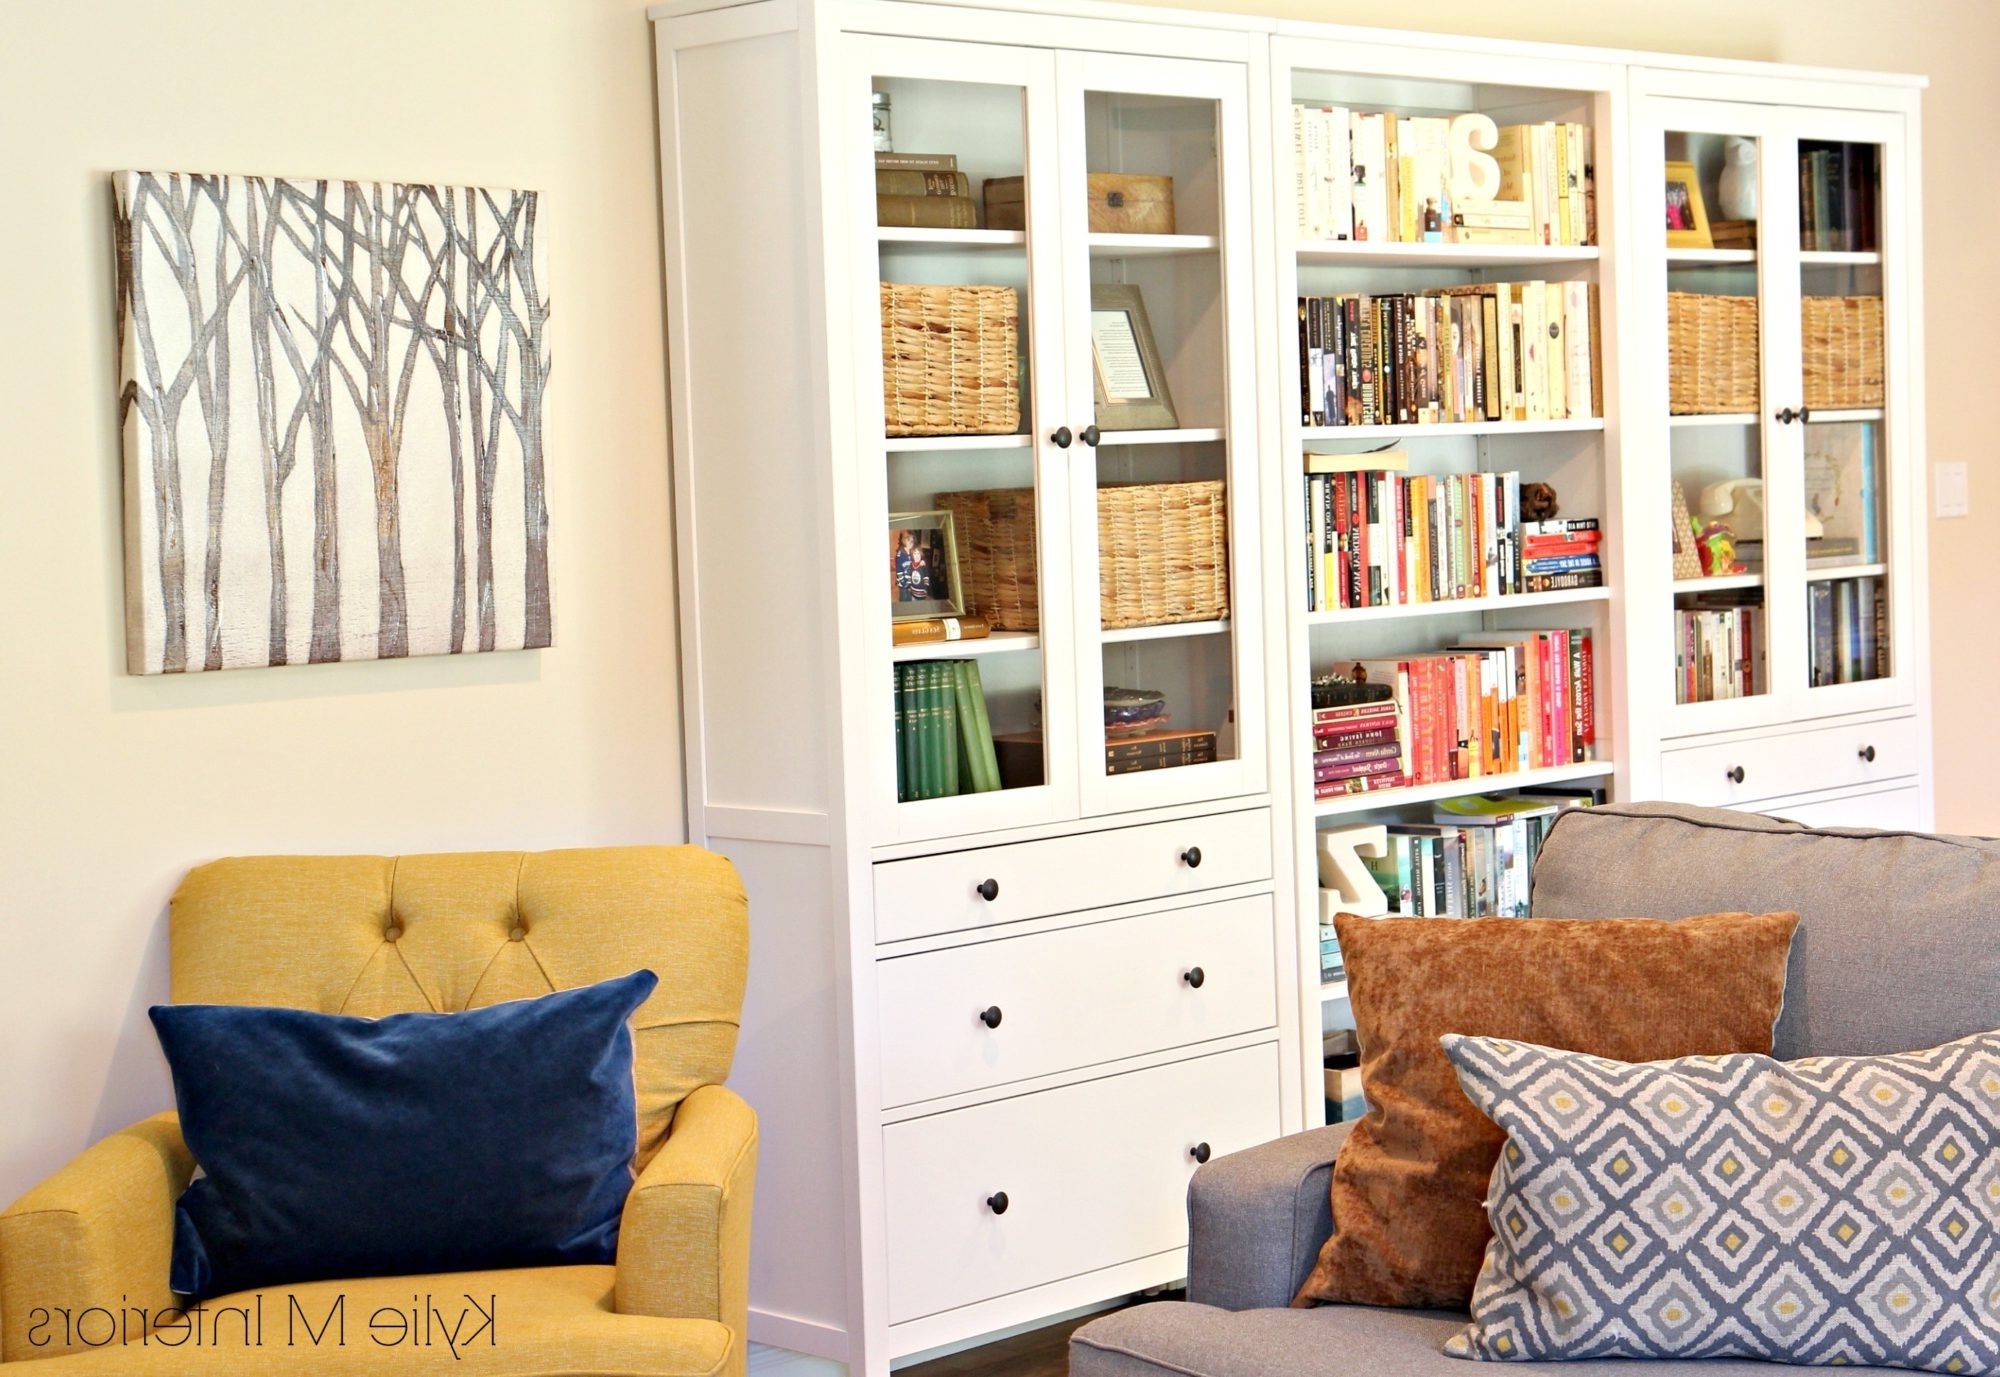 2018 Family Room With Ikea Hemnes Bookcase And Bookshelf (View 7 of 15)